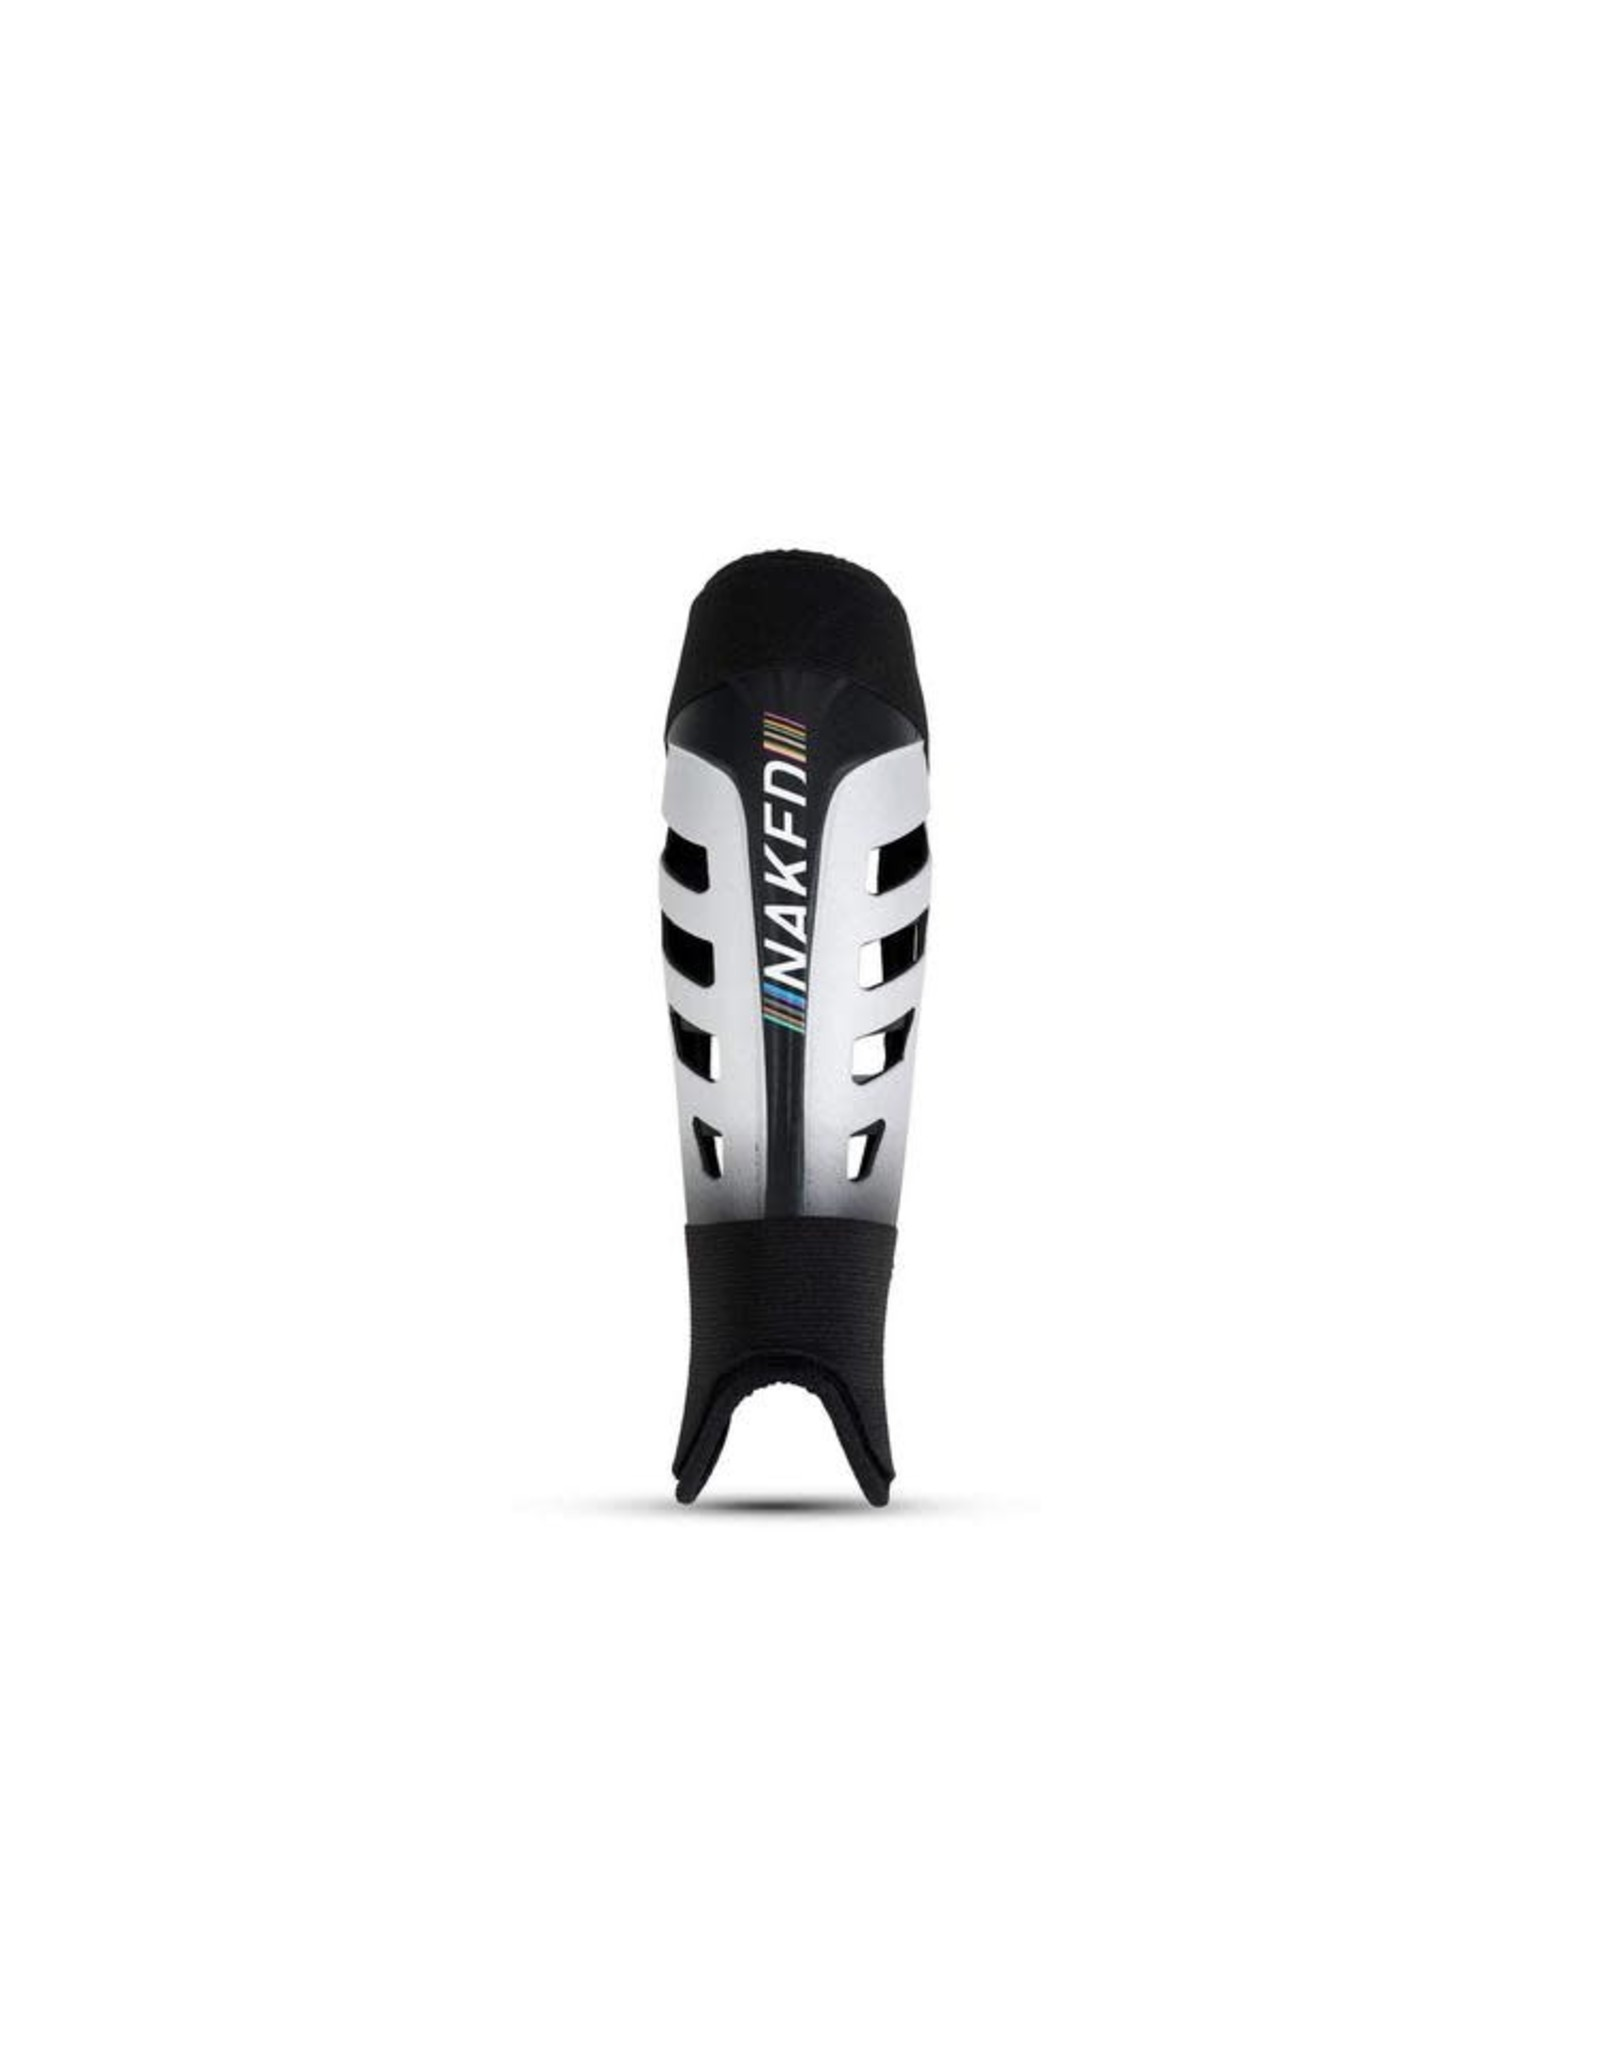 NAKED NAKED PRO SHINGUARD SENIOR